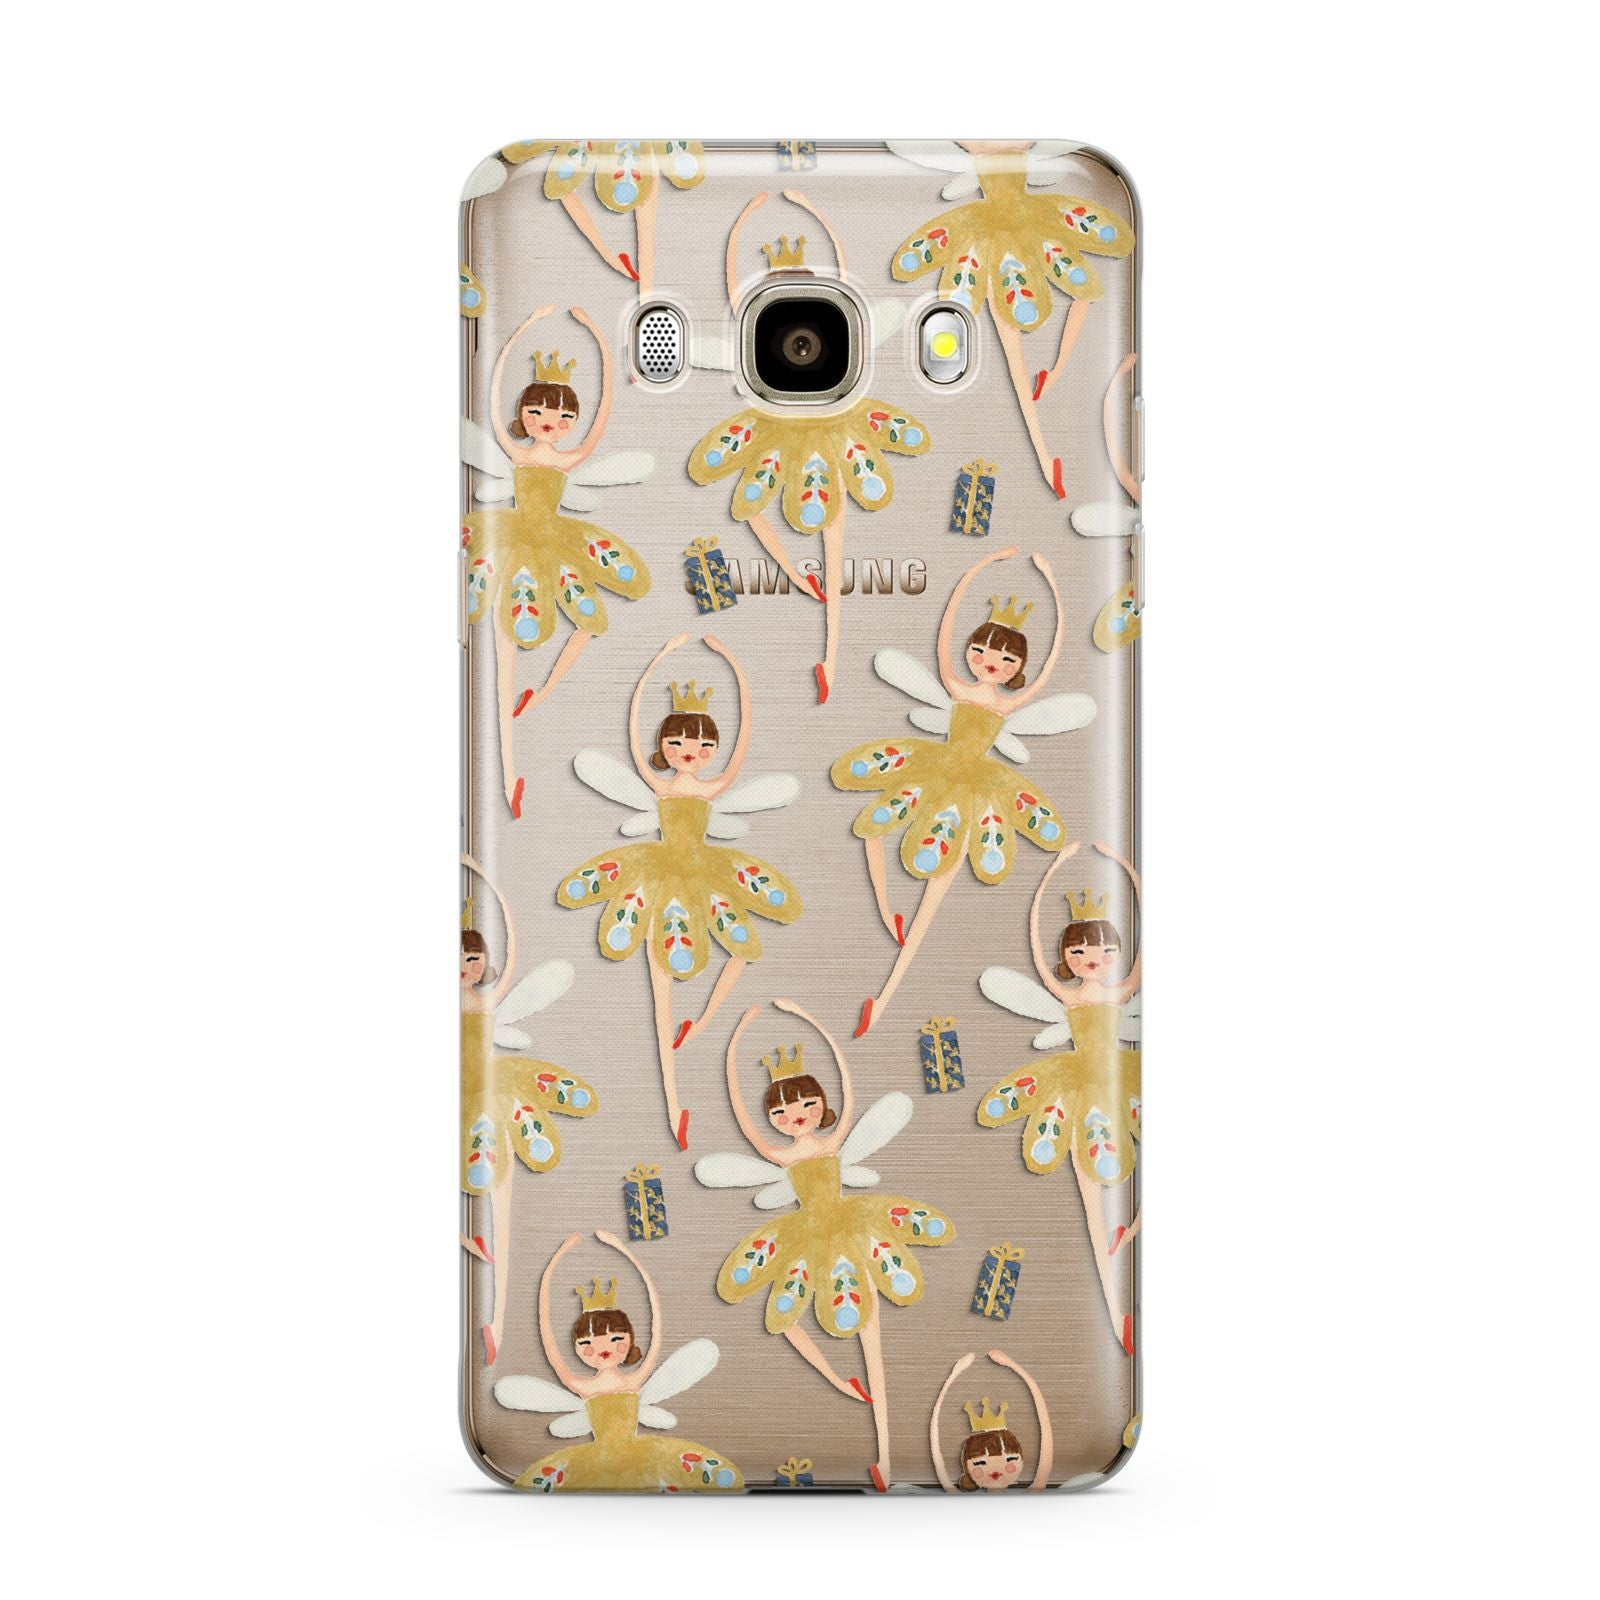 Dancing ballerina princess Samsung Galaxy J7 2016 Case on gold phone